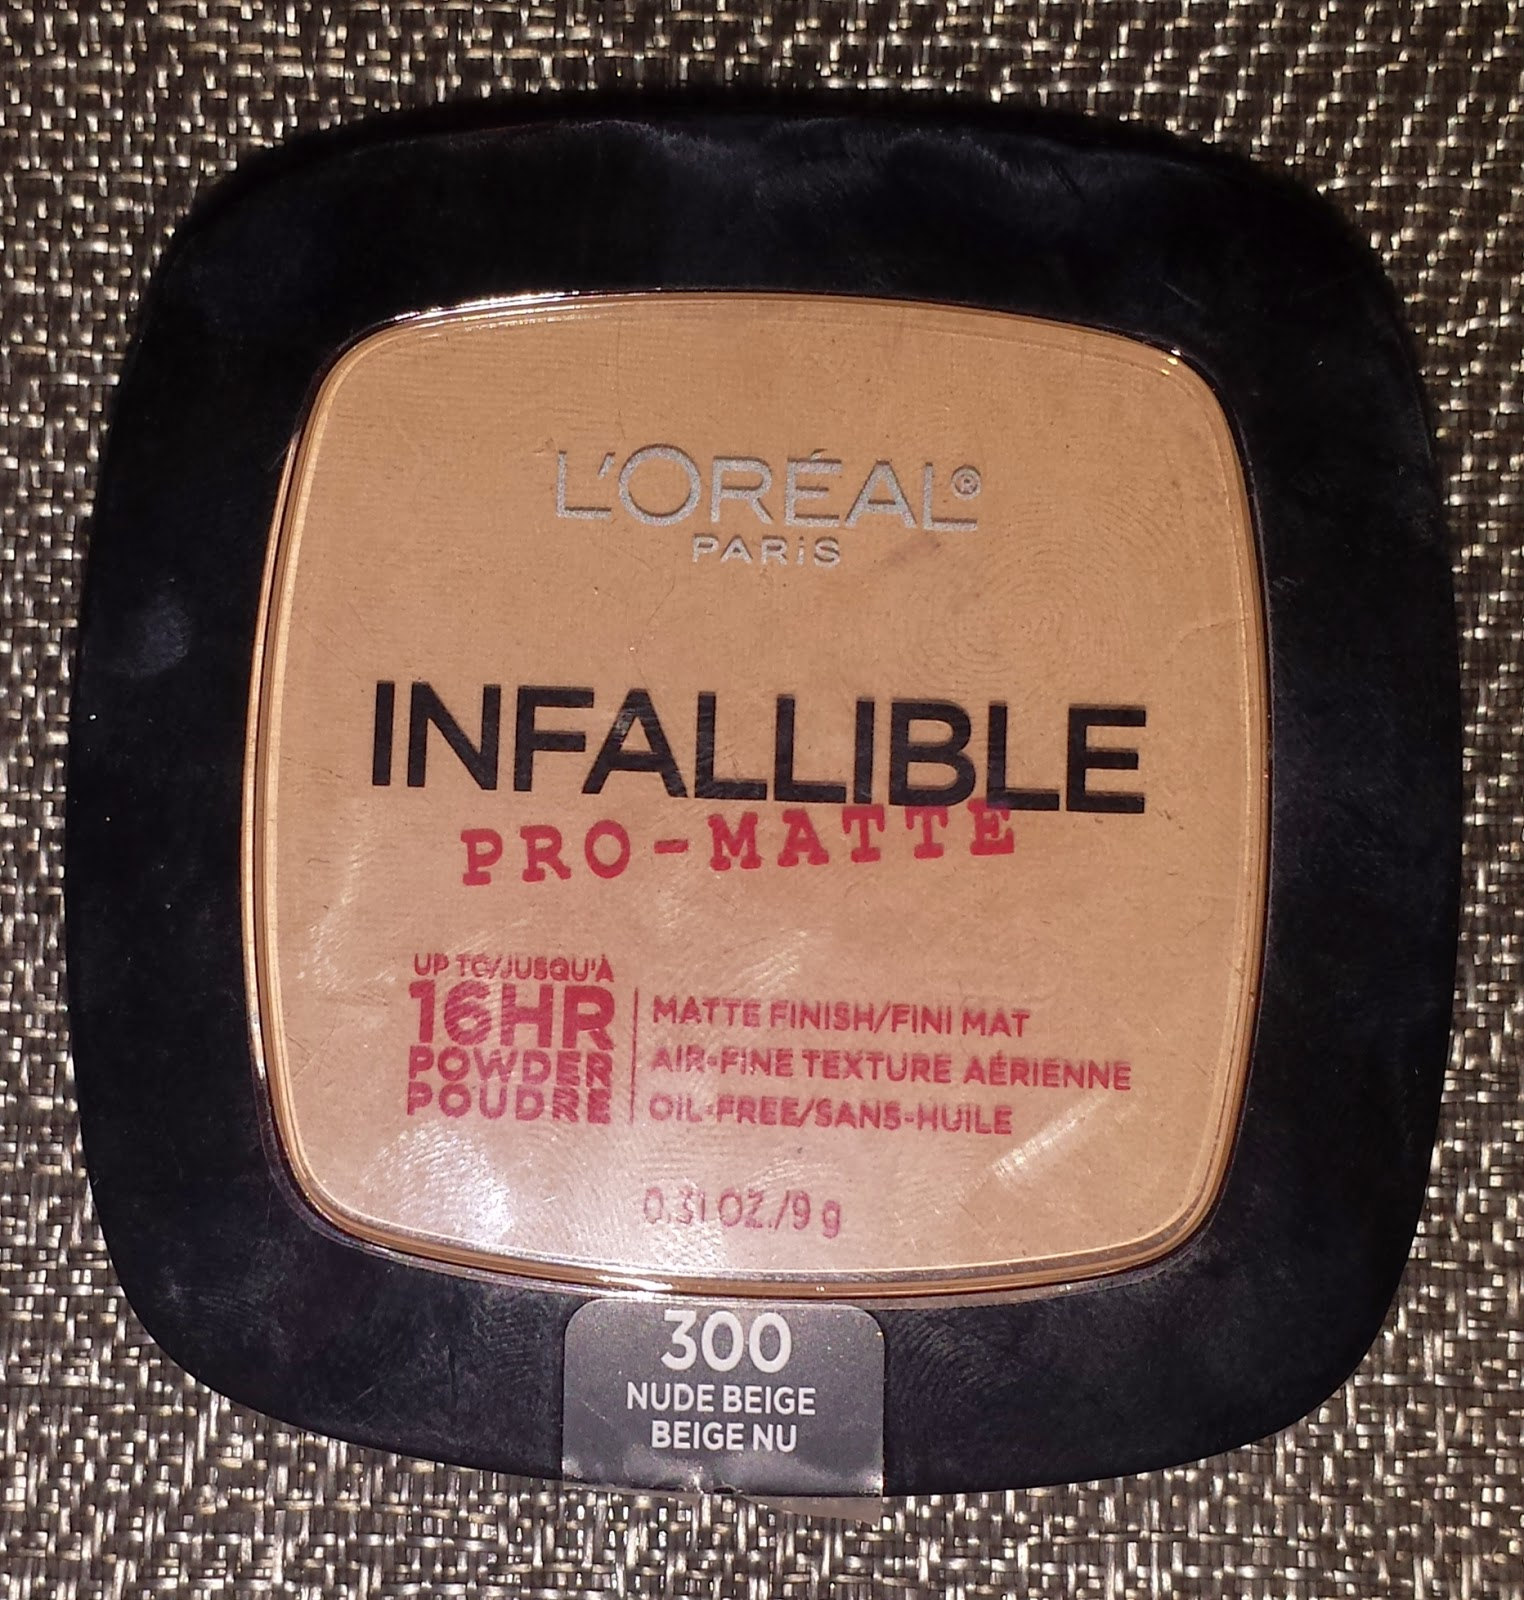 L'Oreal Infalliable Pro-Matte 16 Hr. Powder